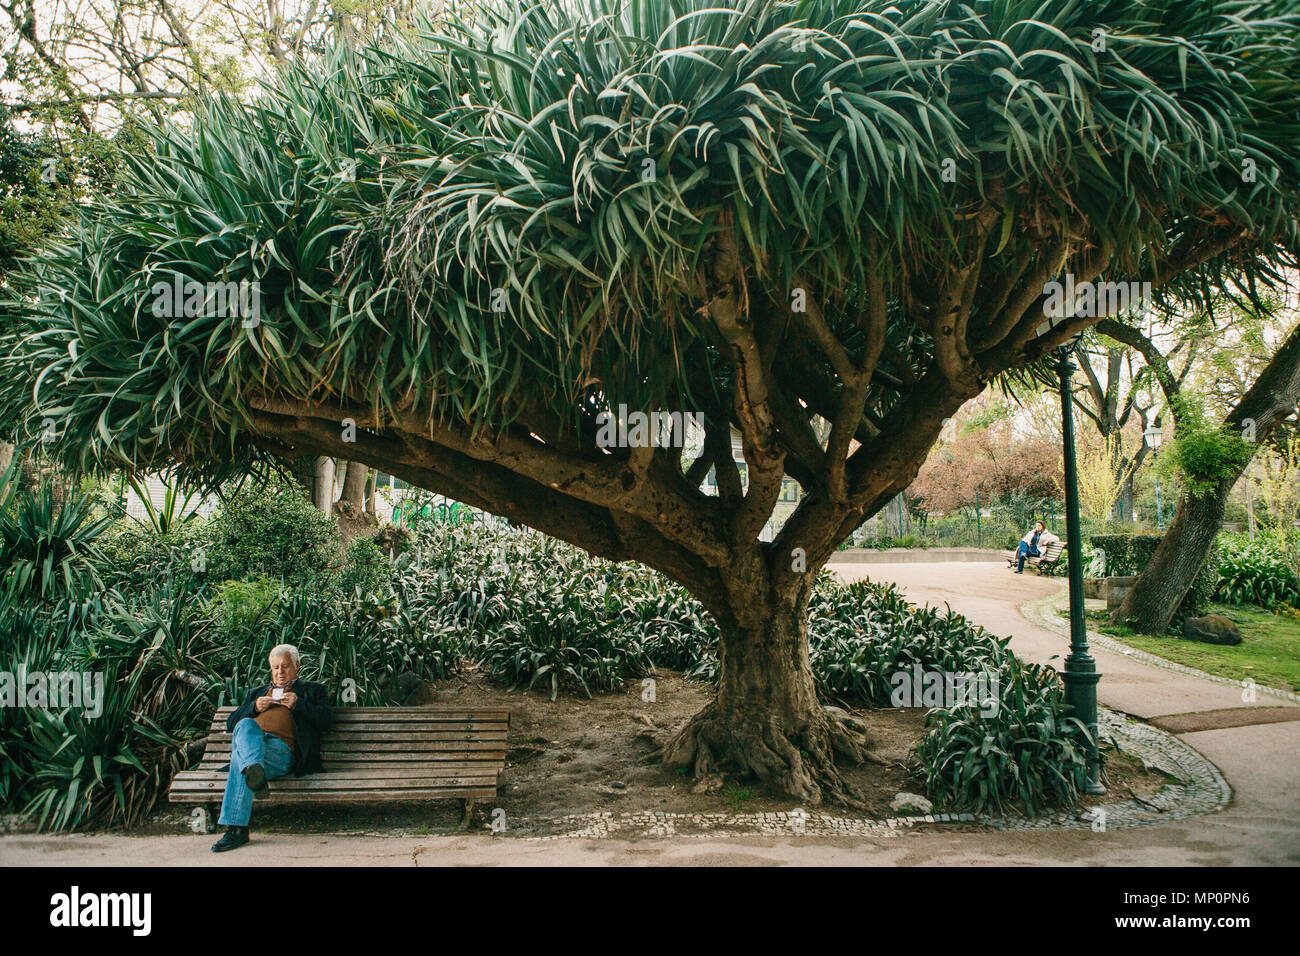 Lisbon, Portugal 01 may 2018: lonely people in garden under trees. Lonely man waits his woman and wait for acquaintance. Loneliness and a privacy in g - Stock Image